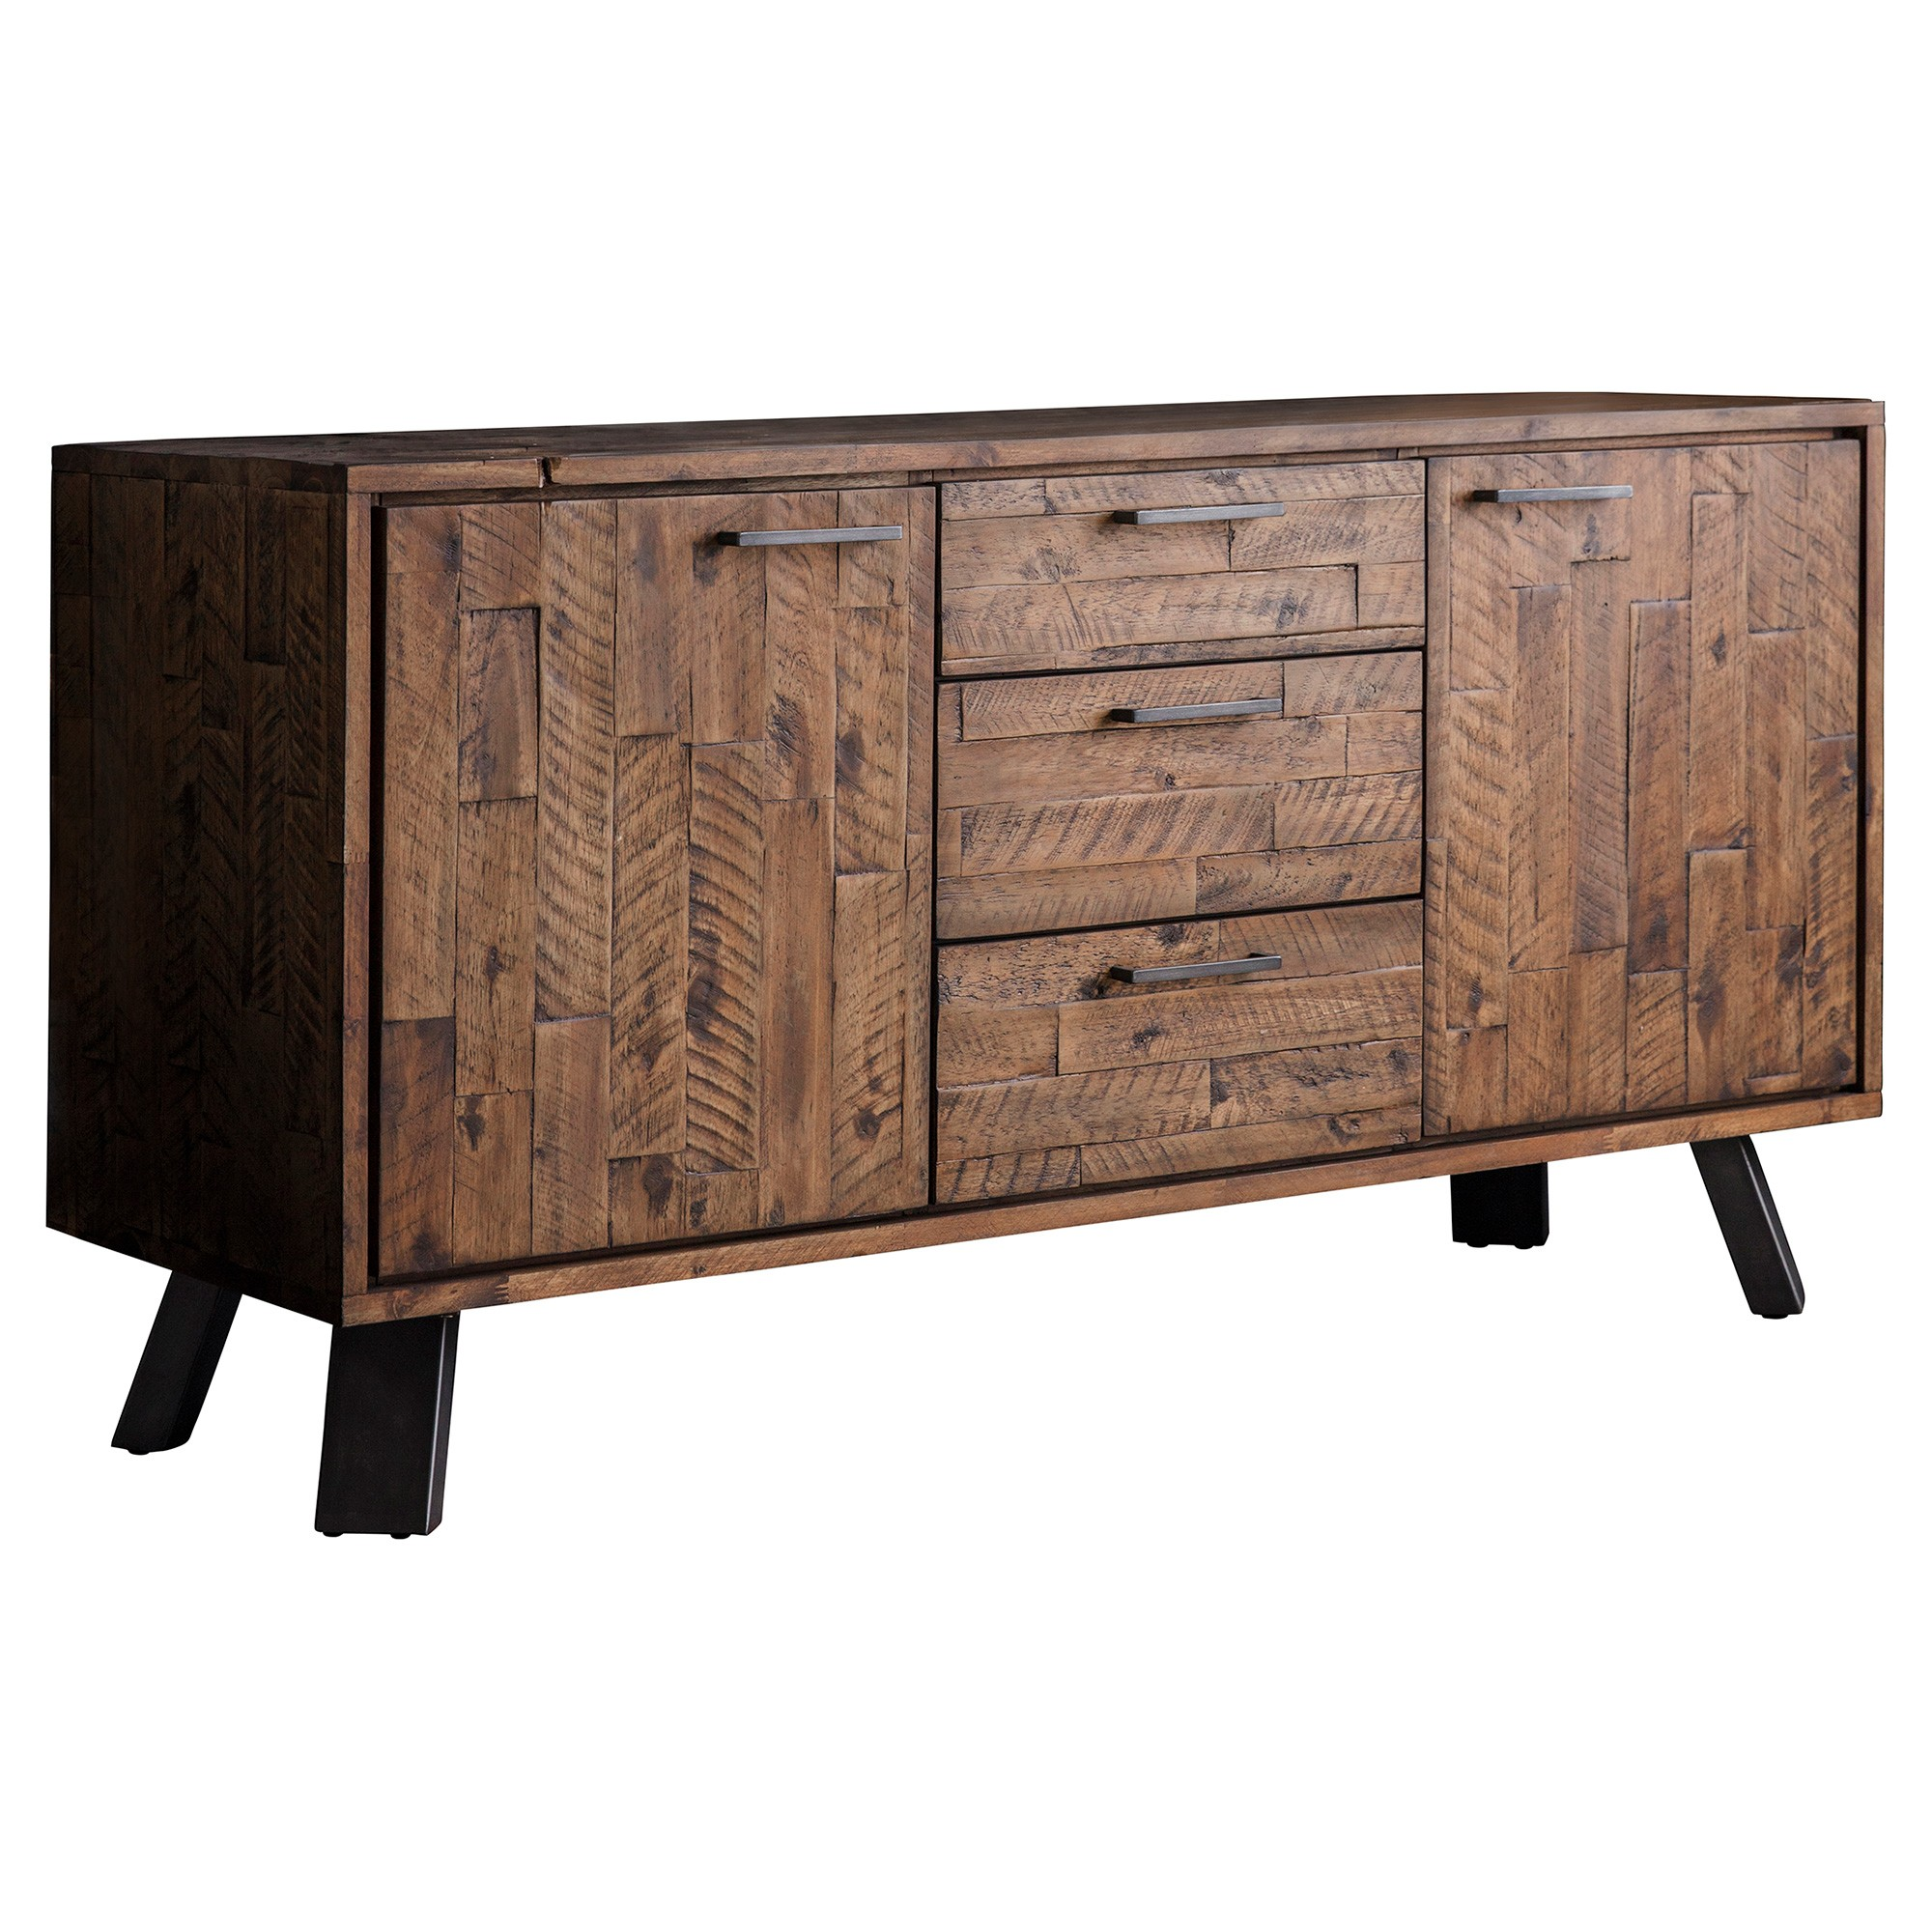 Connie Rustic Acacia Timber & Metal 2 Door 3 Drawer Sideboard, 140cm